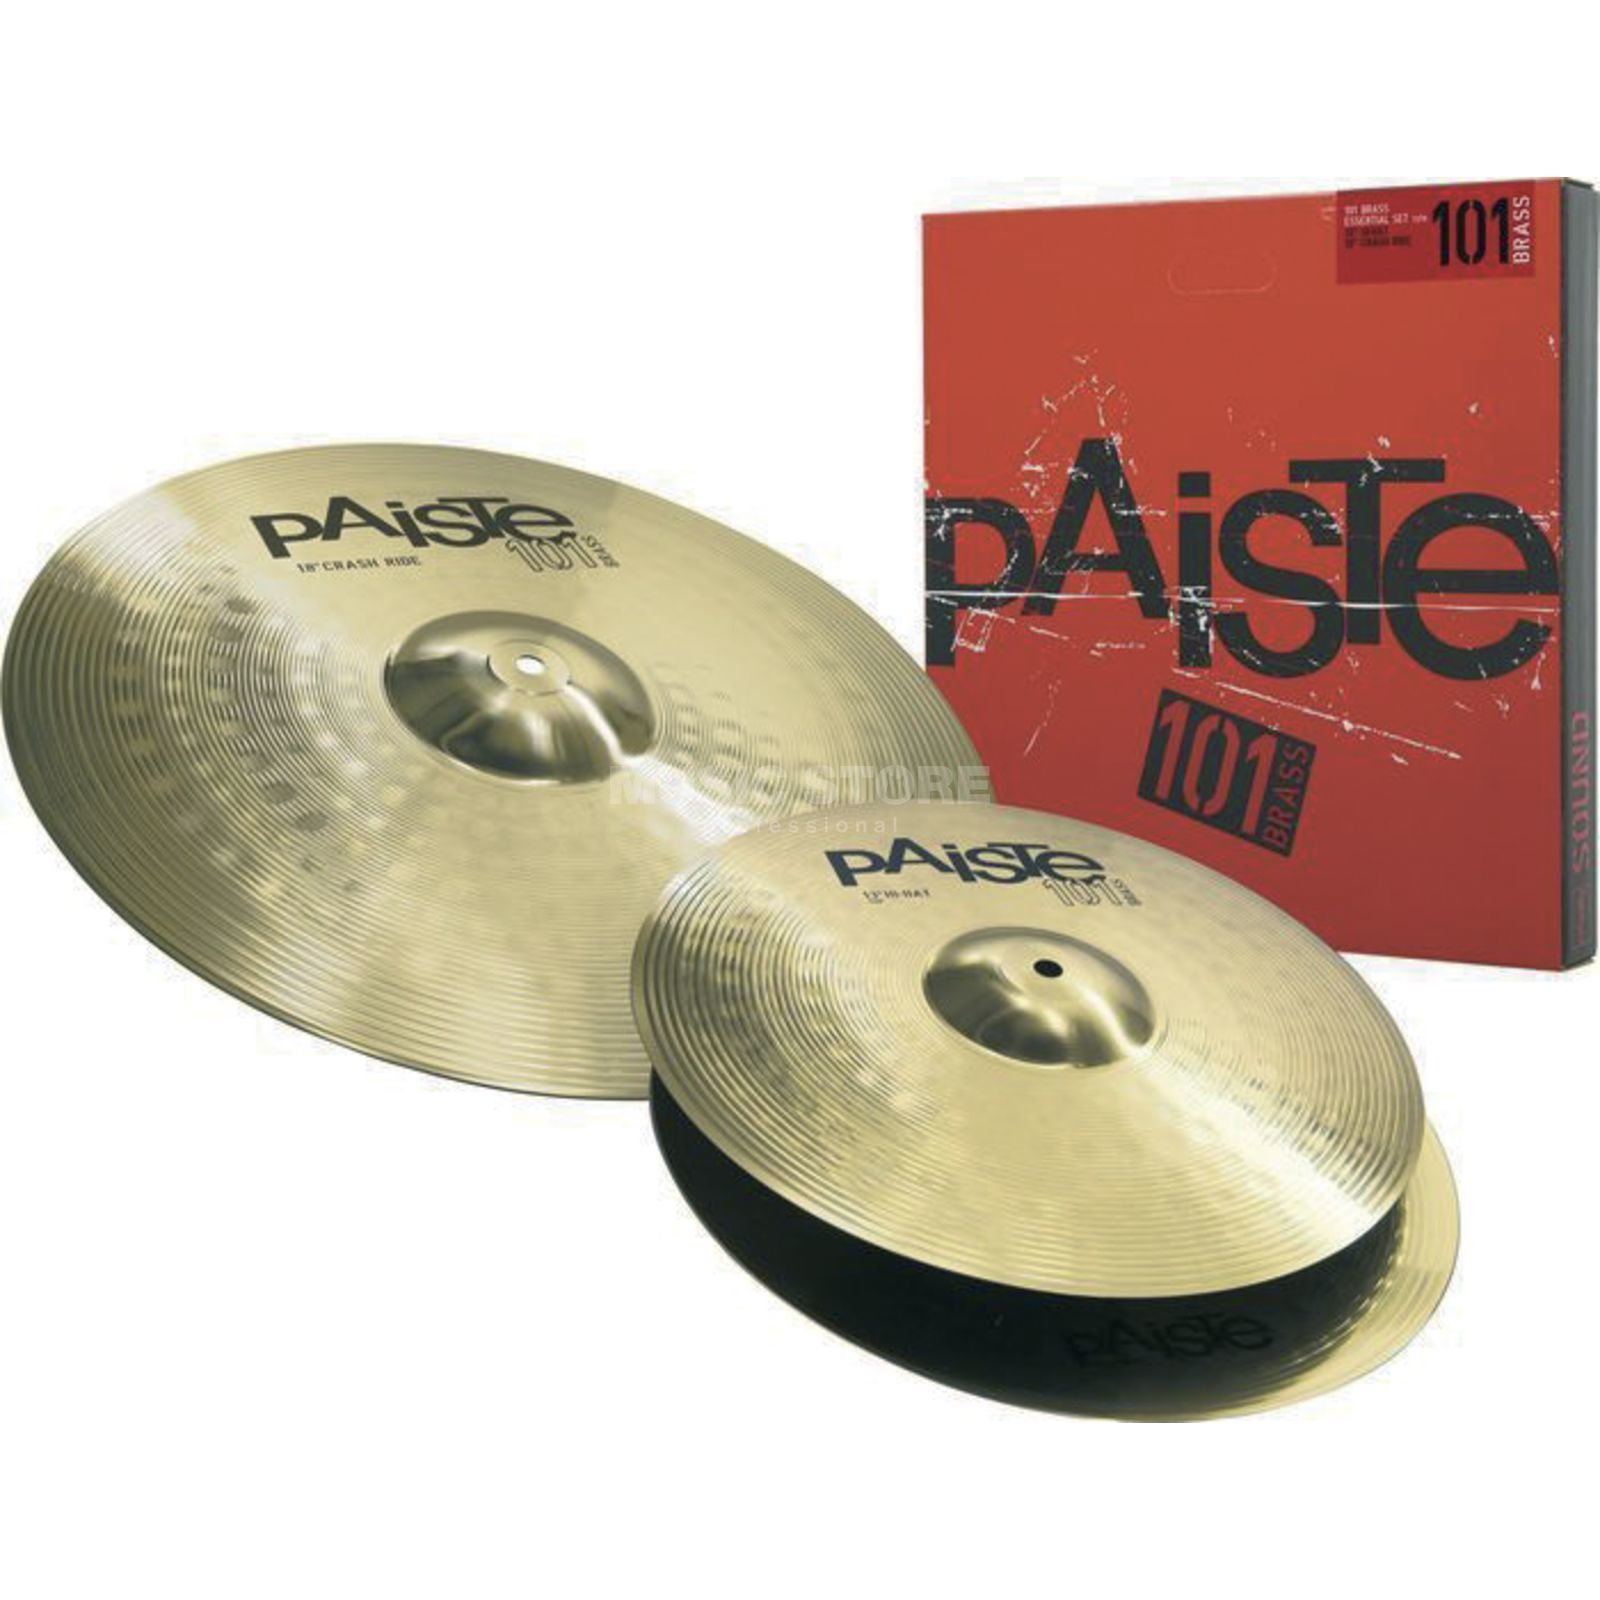 "Paiste 101 Brass Cymbal Set Essential 13"" HiHat, 18"" Crash Ride Produktbillede"